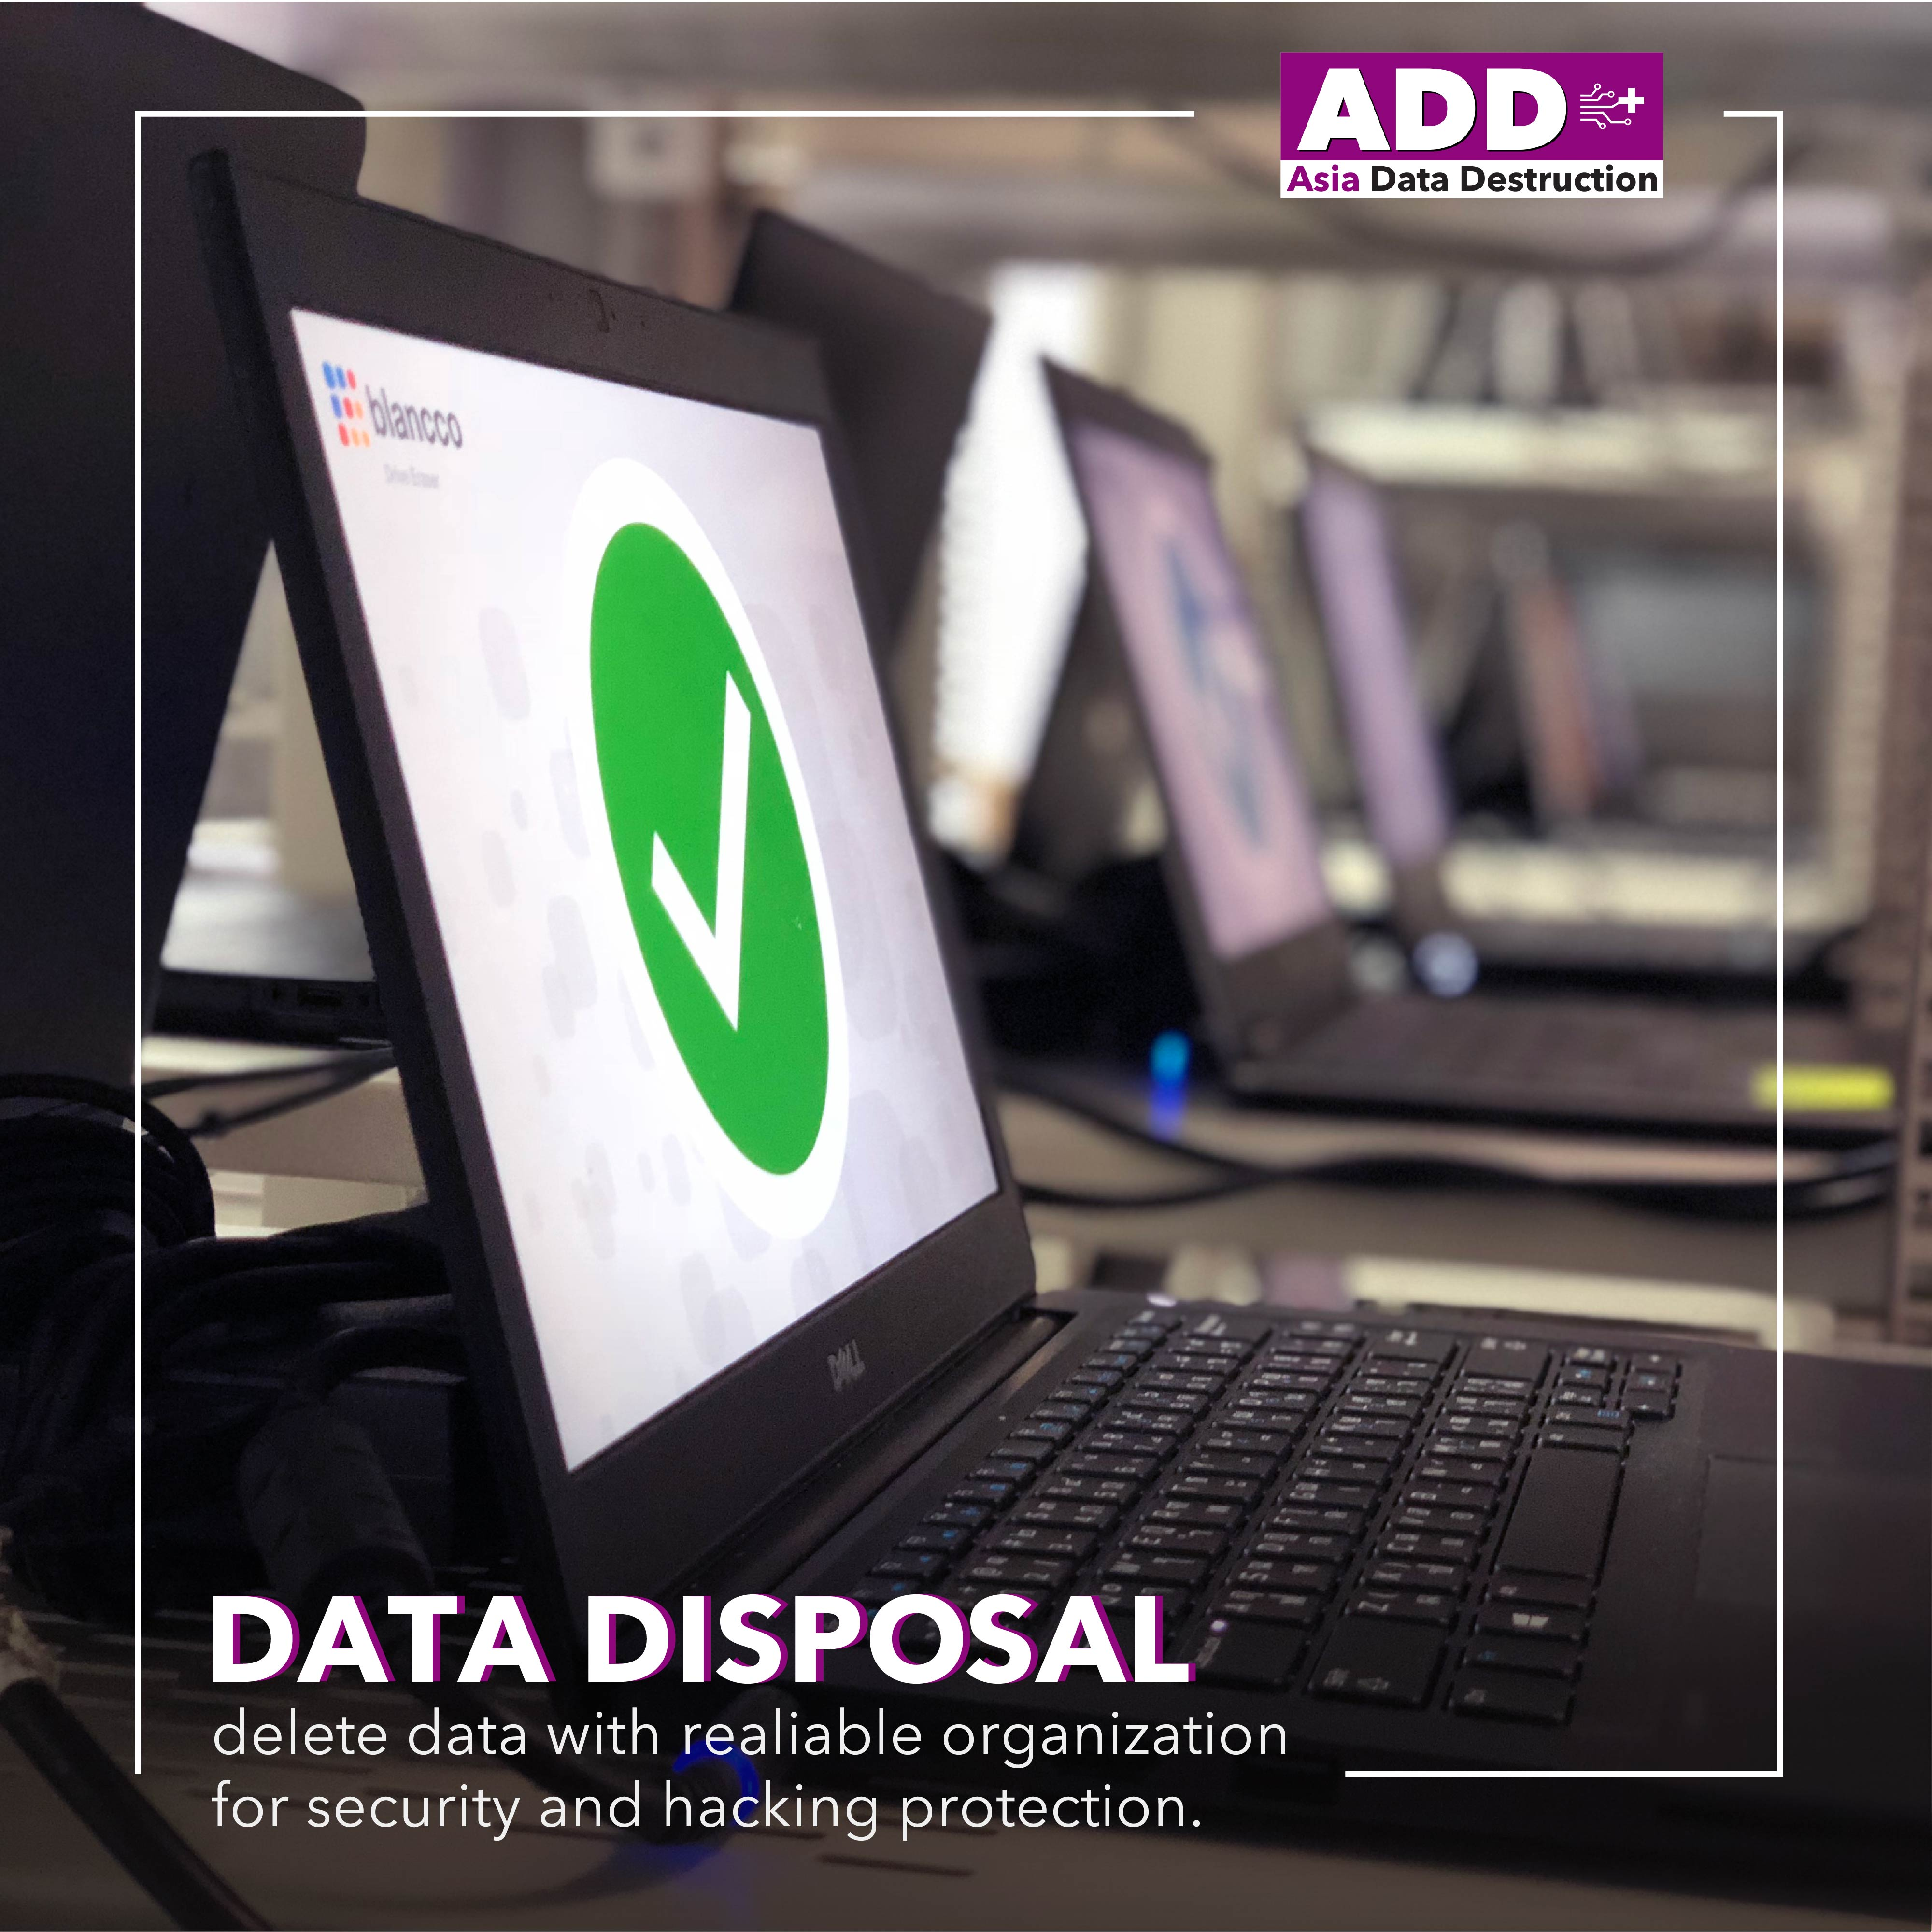 COVID-19: Closing company, how to deal with obsoleted computer? IT Asset Disposal is your solution. Bangkok and Worldwide service. 10